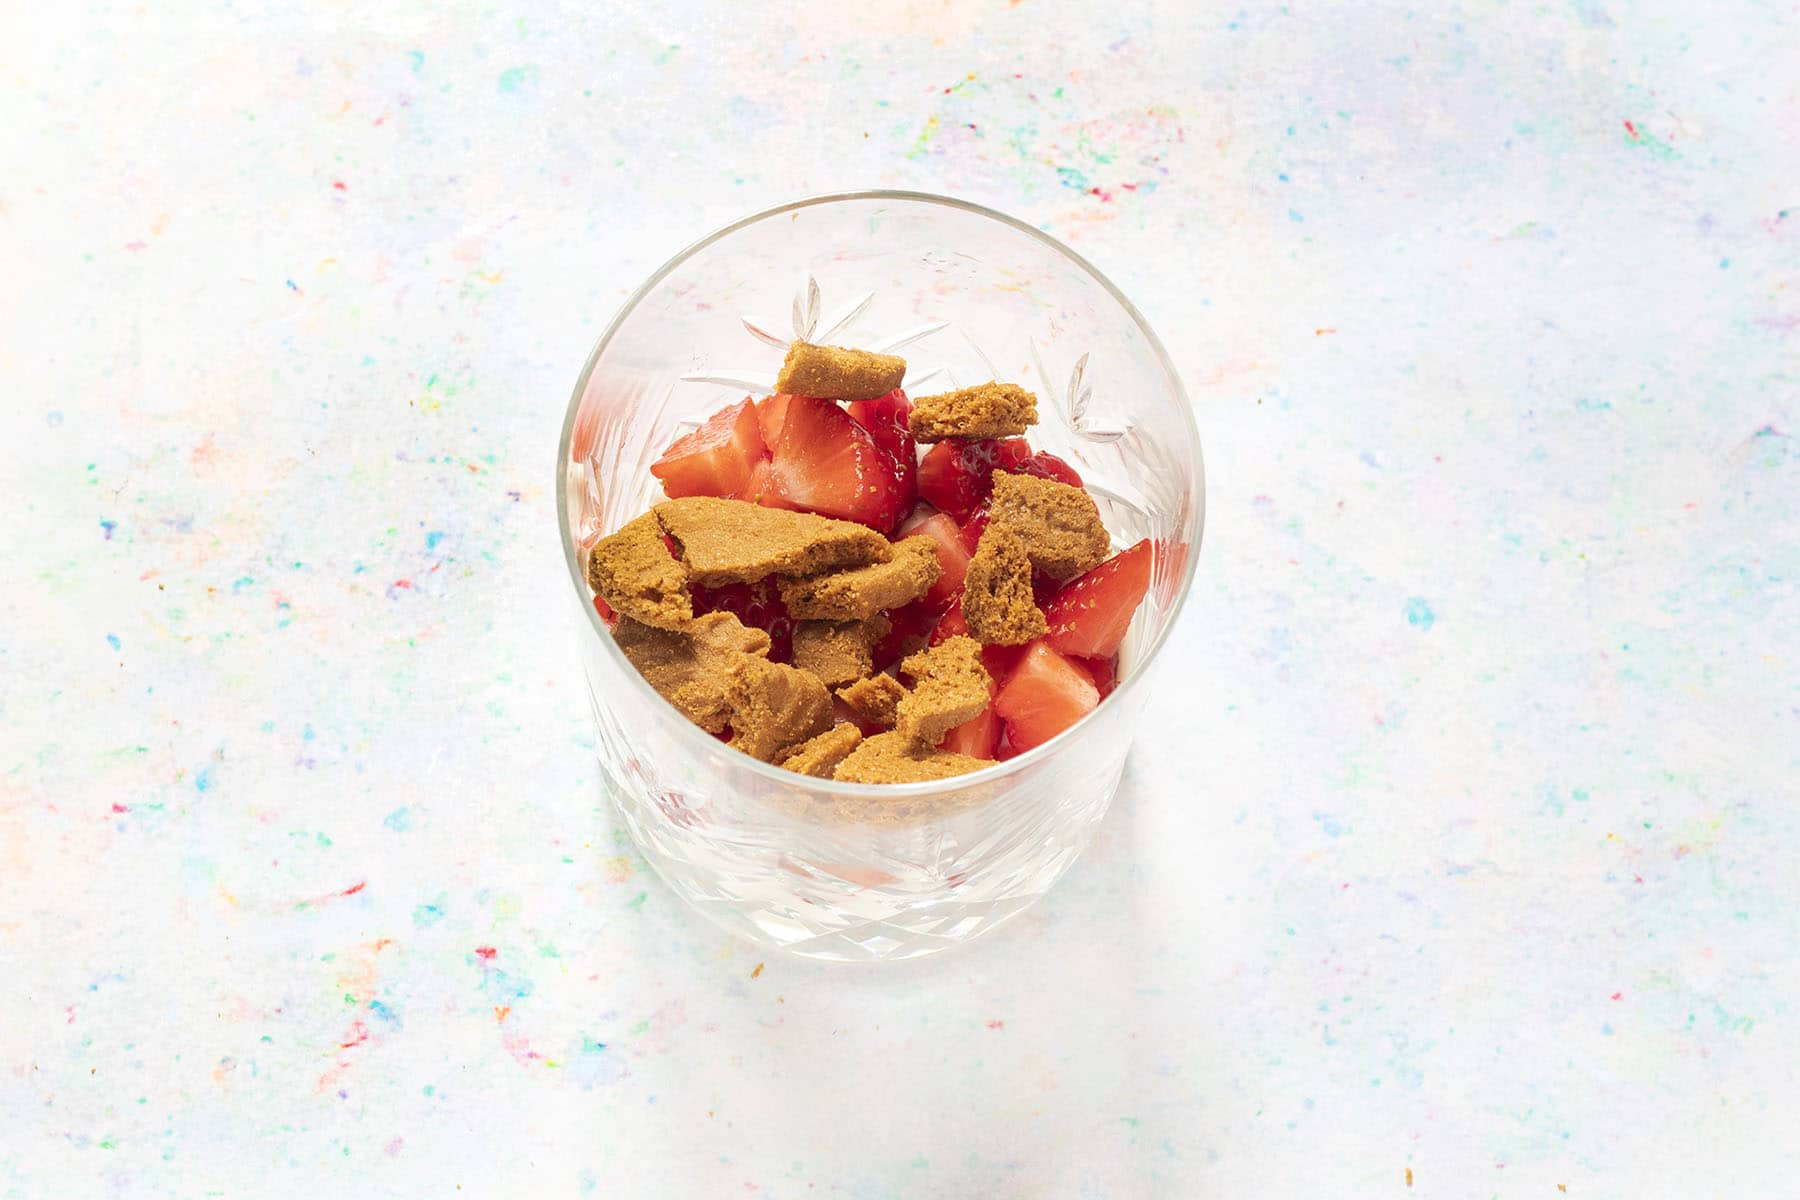 strawberries and biscuits in glass